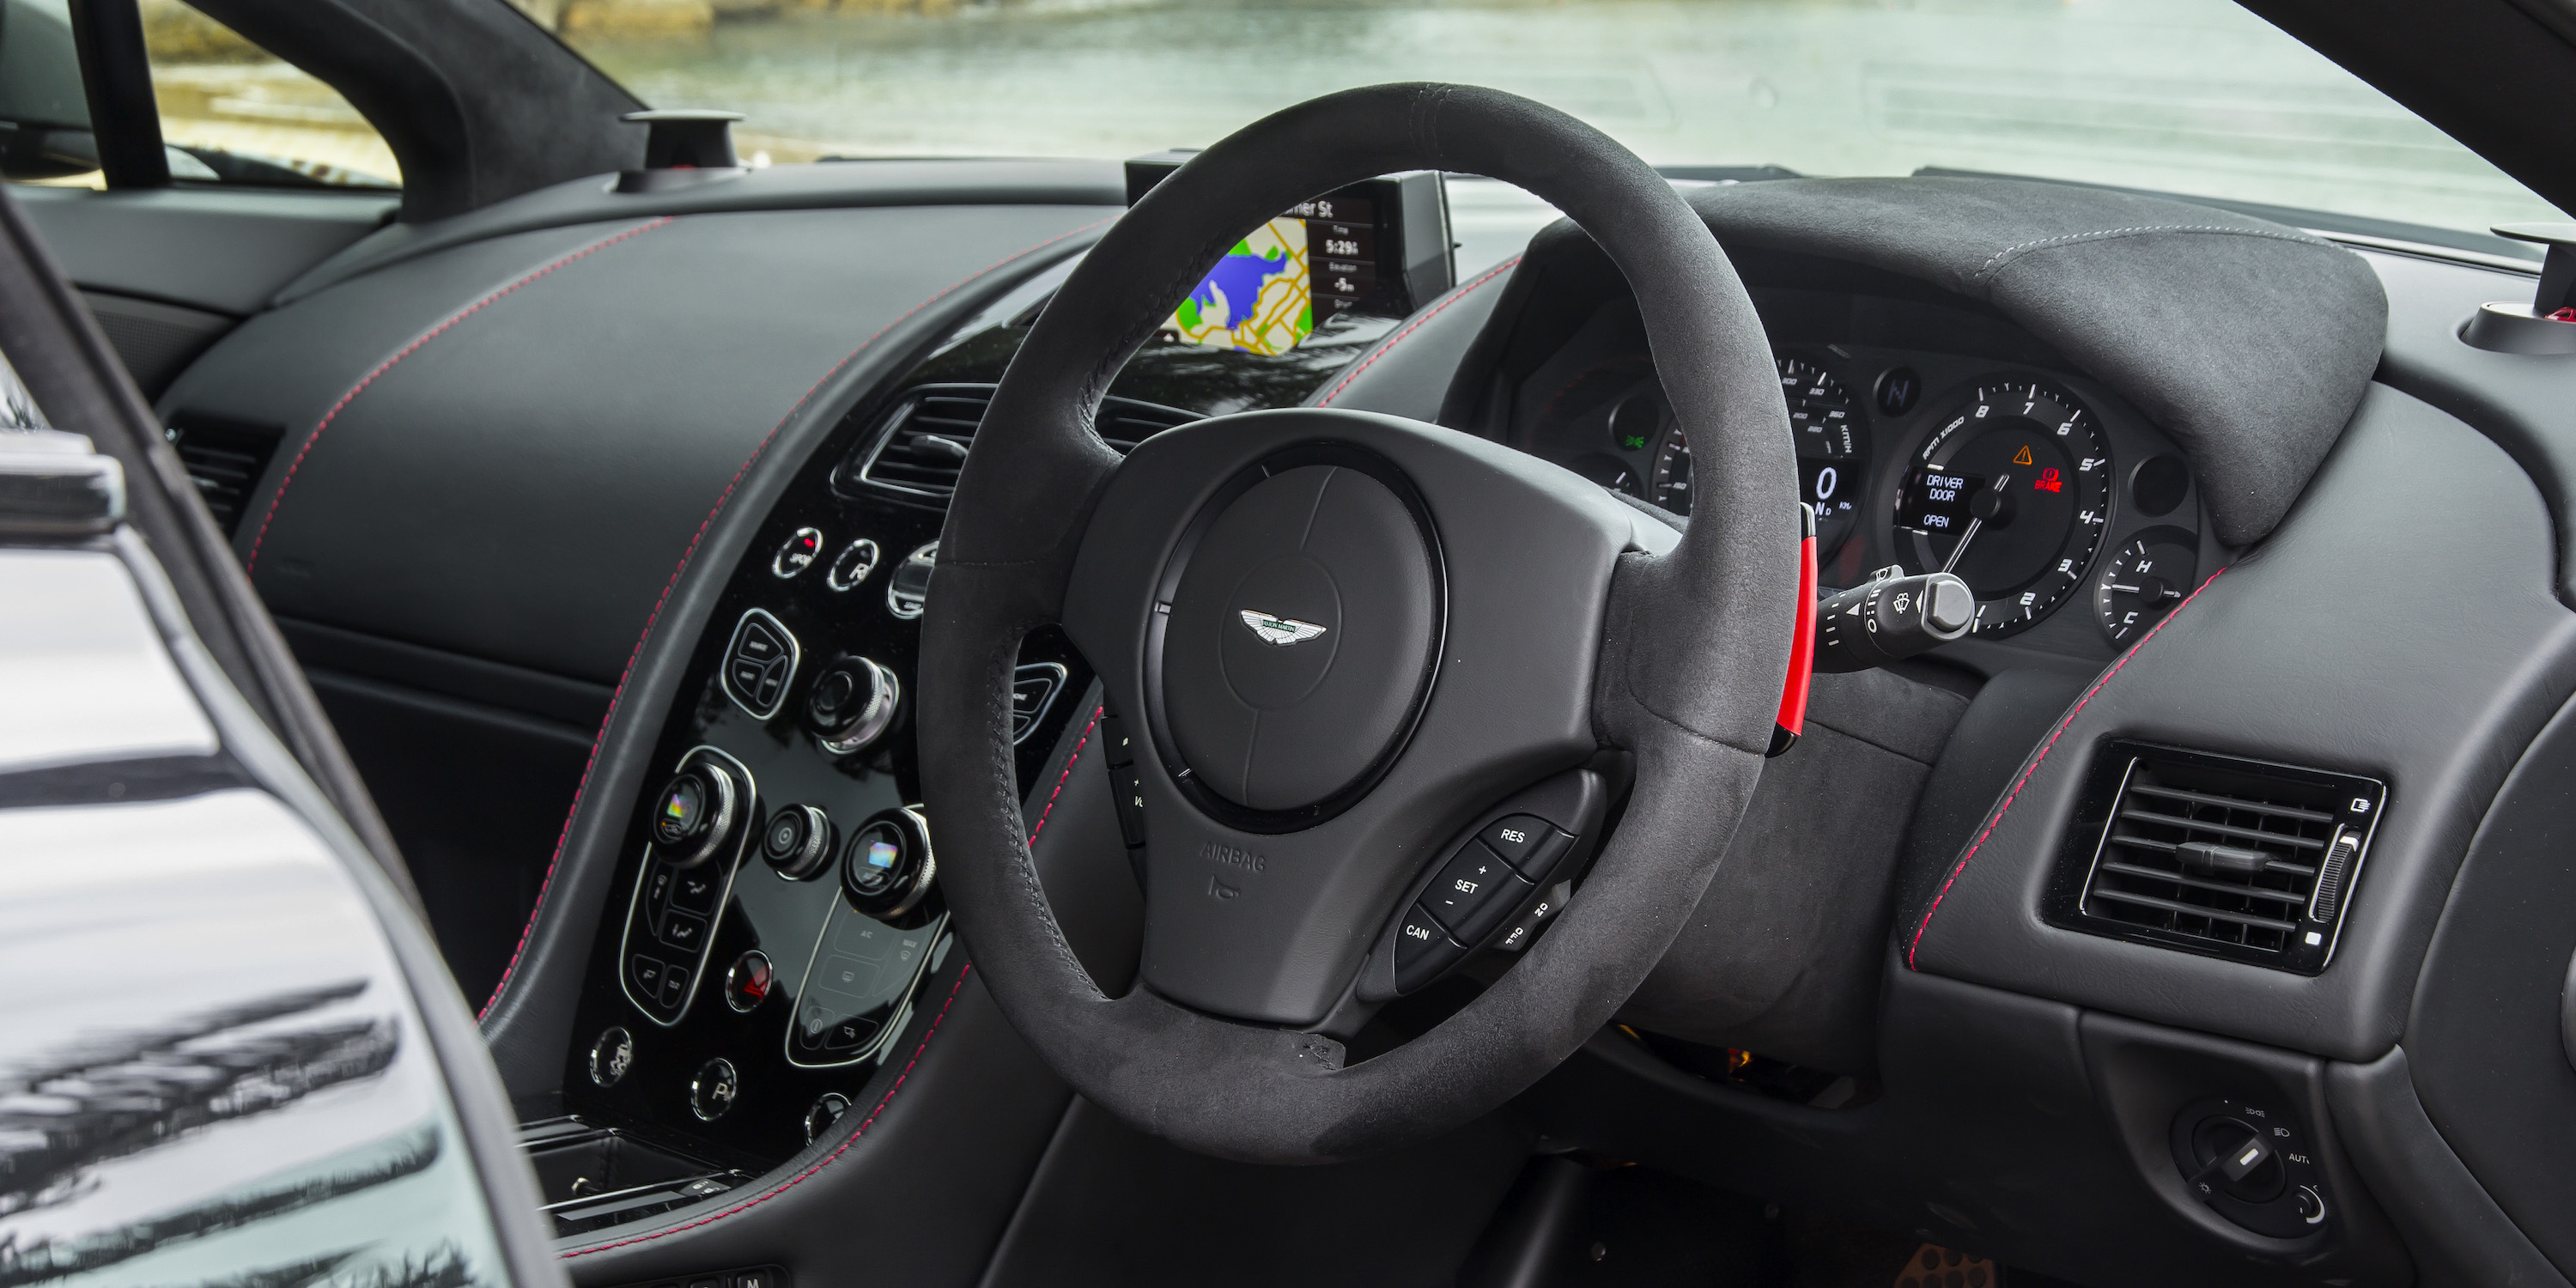 2016 Aston Martin Vantage Gt Steering (View 13 of 25)